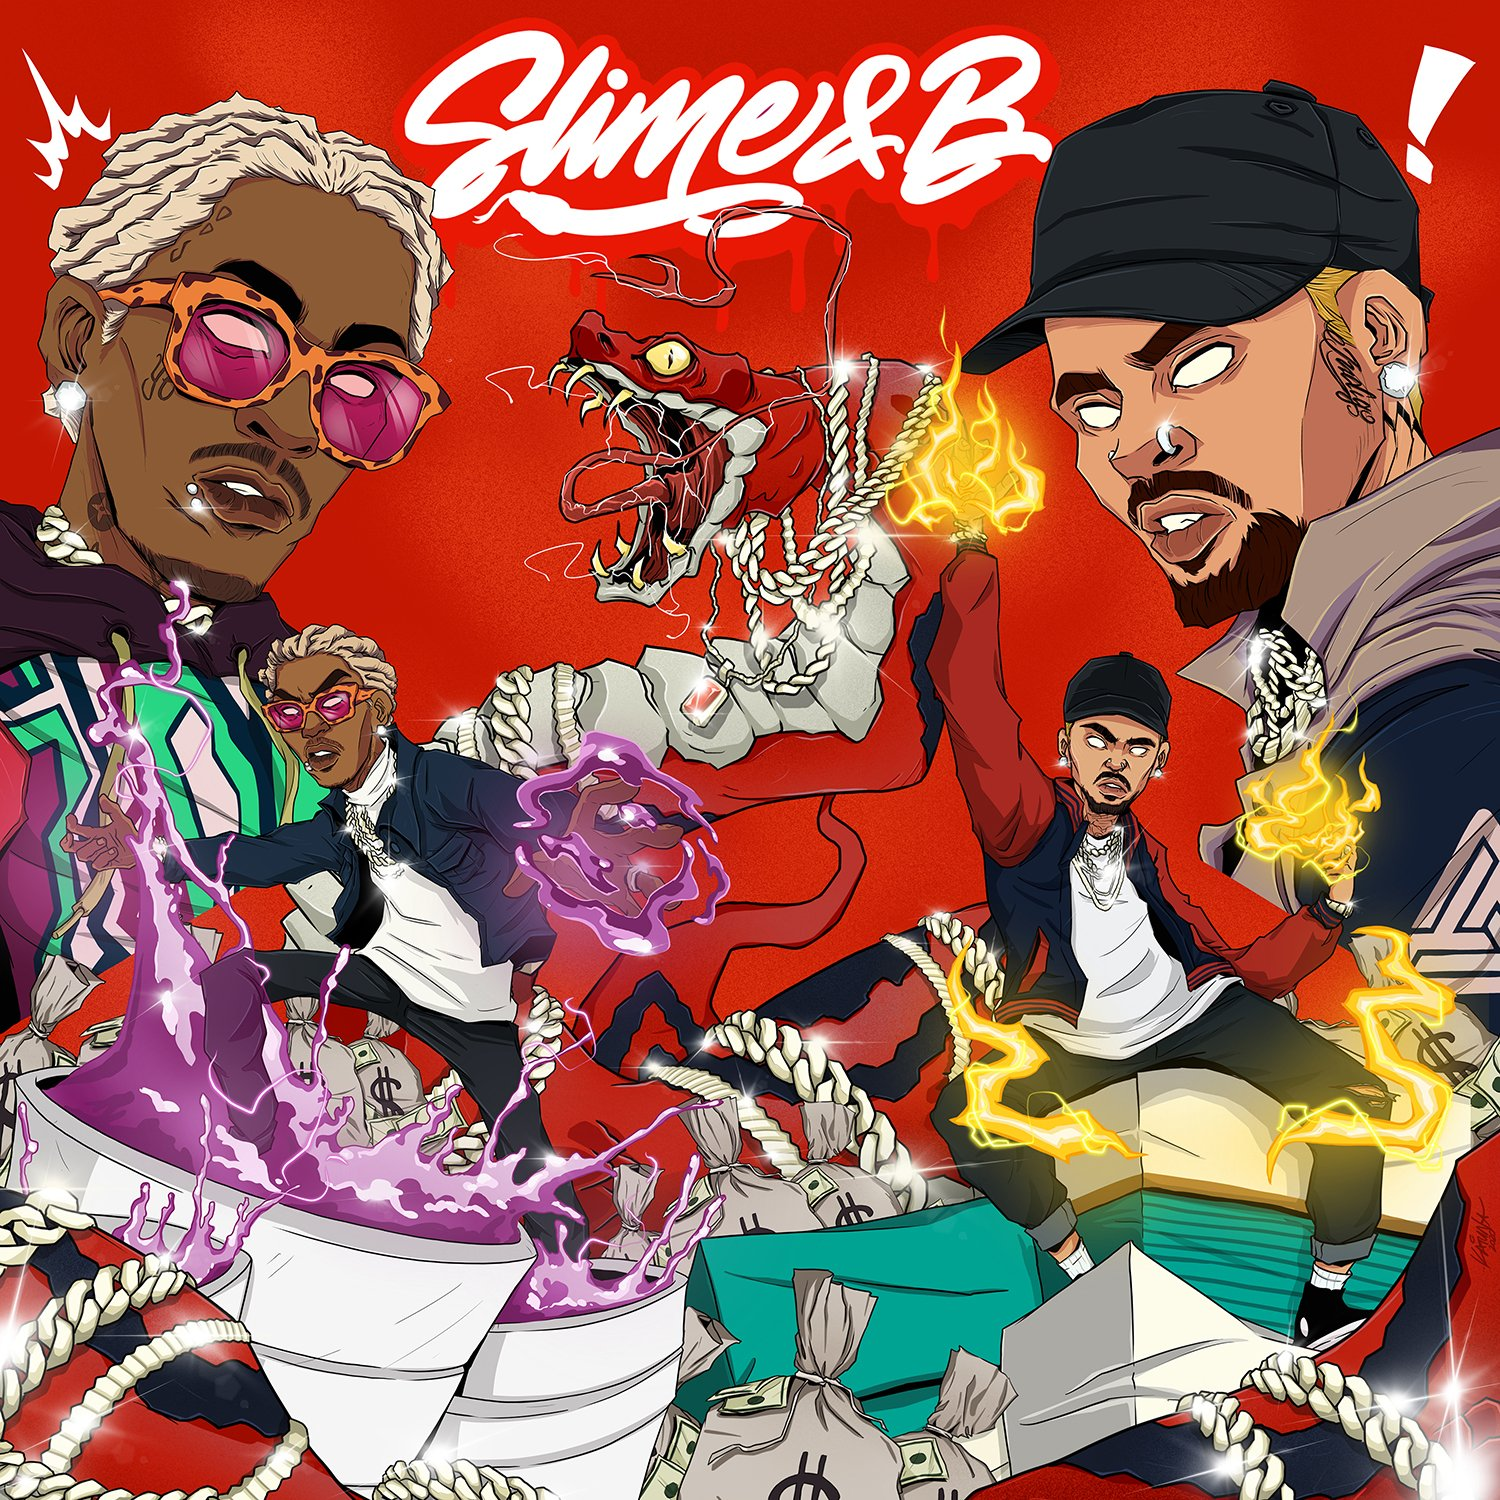 CHRIS AND YOUNG THUG TEAM UP FOR 'SLIME & B' MIXTAPE!